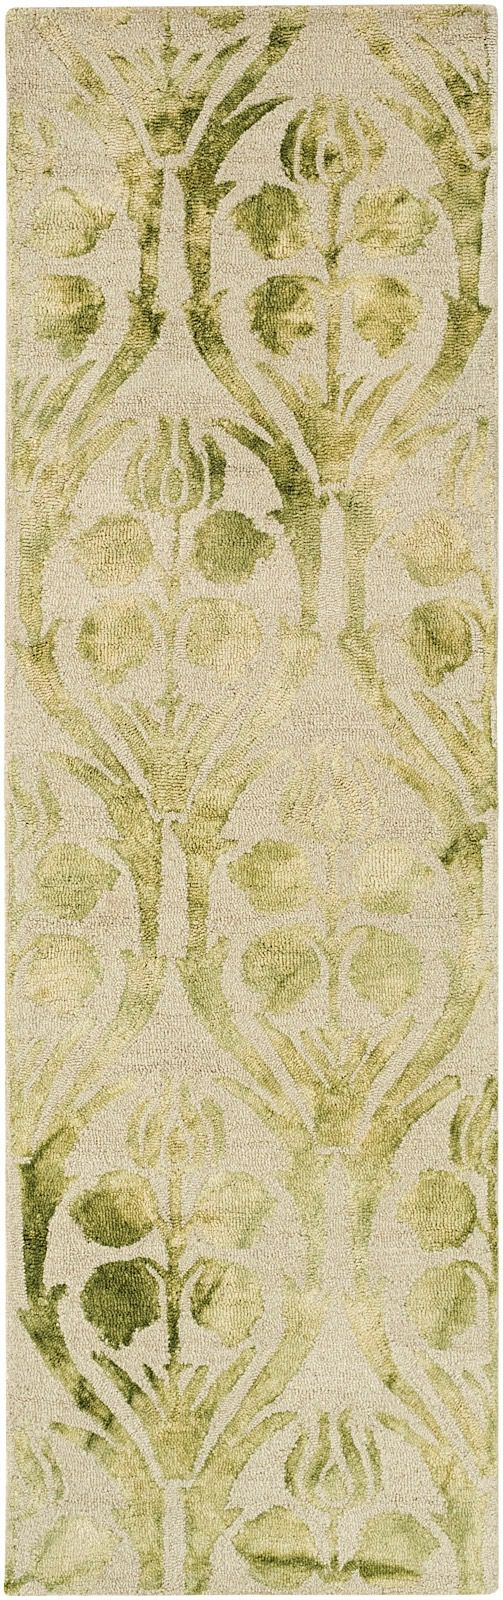 surya serafina country & floral area rug collection